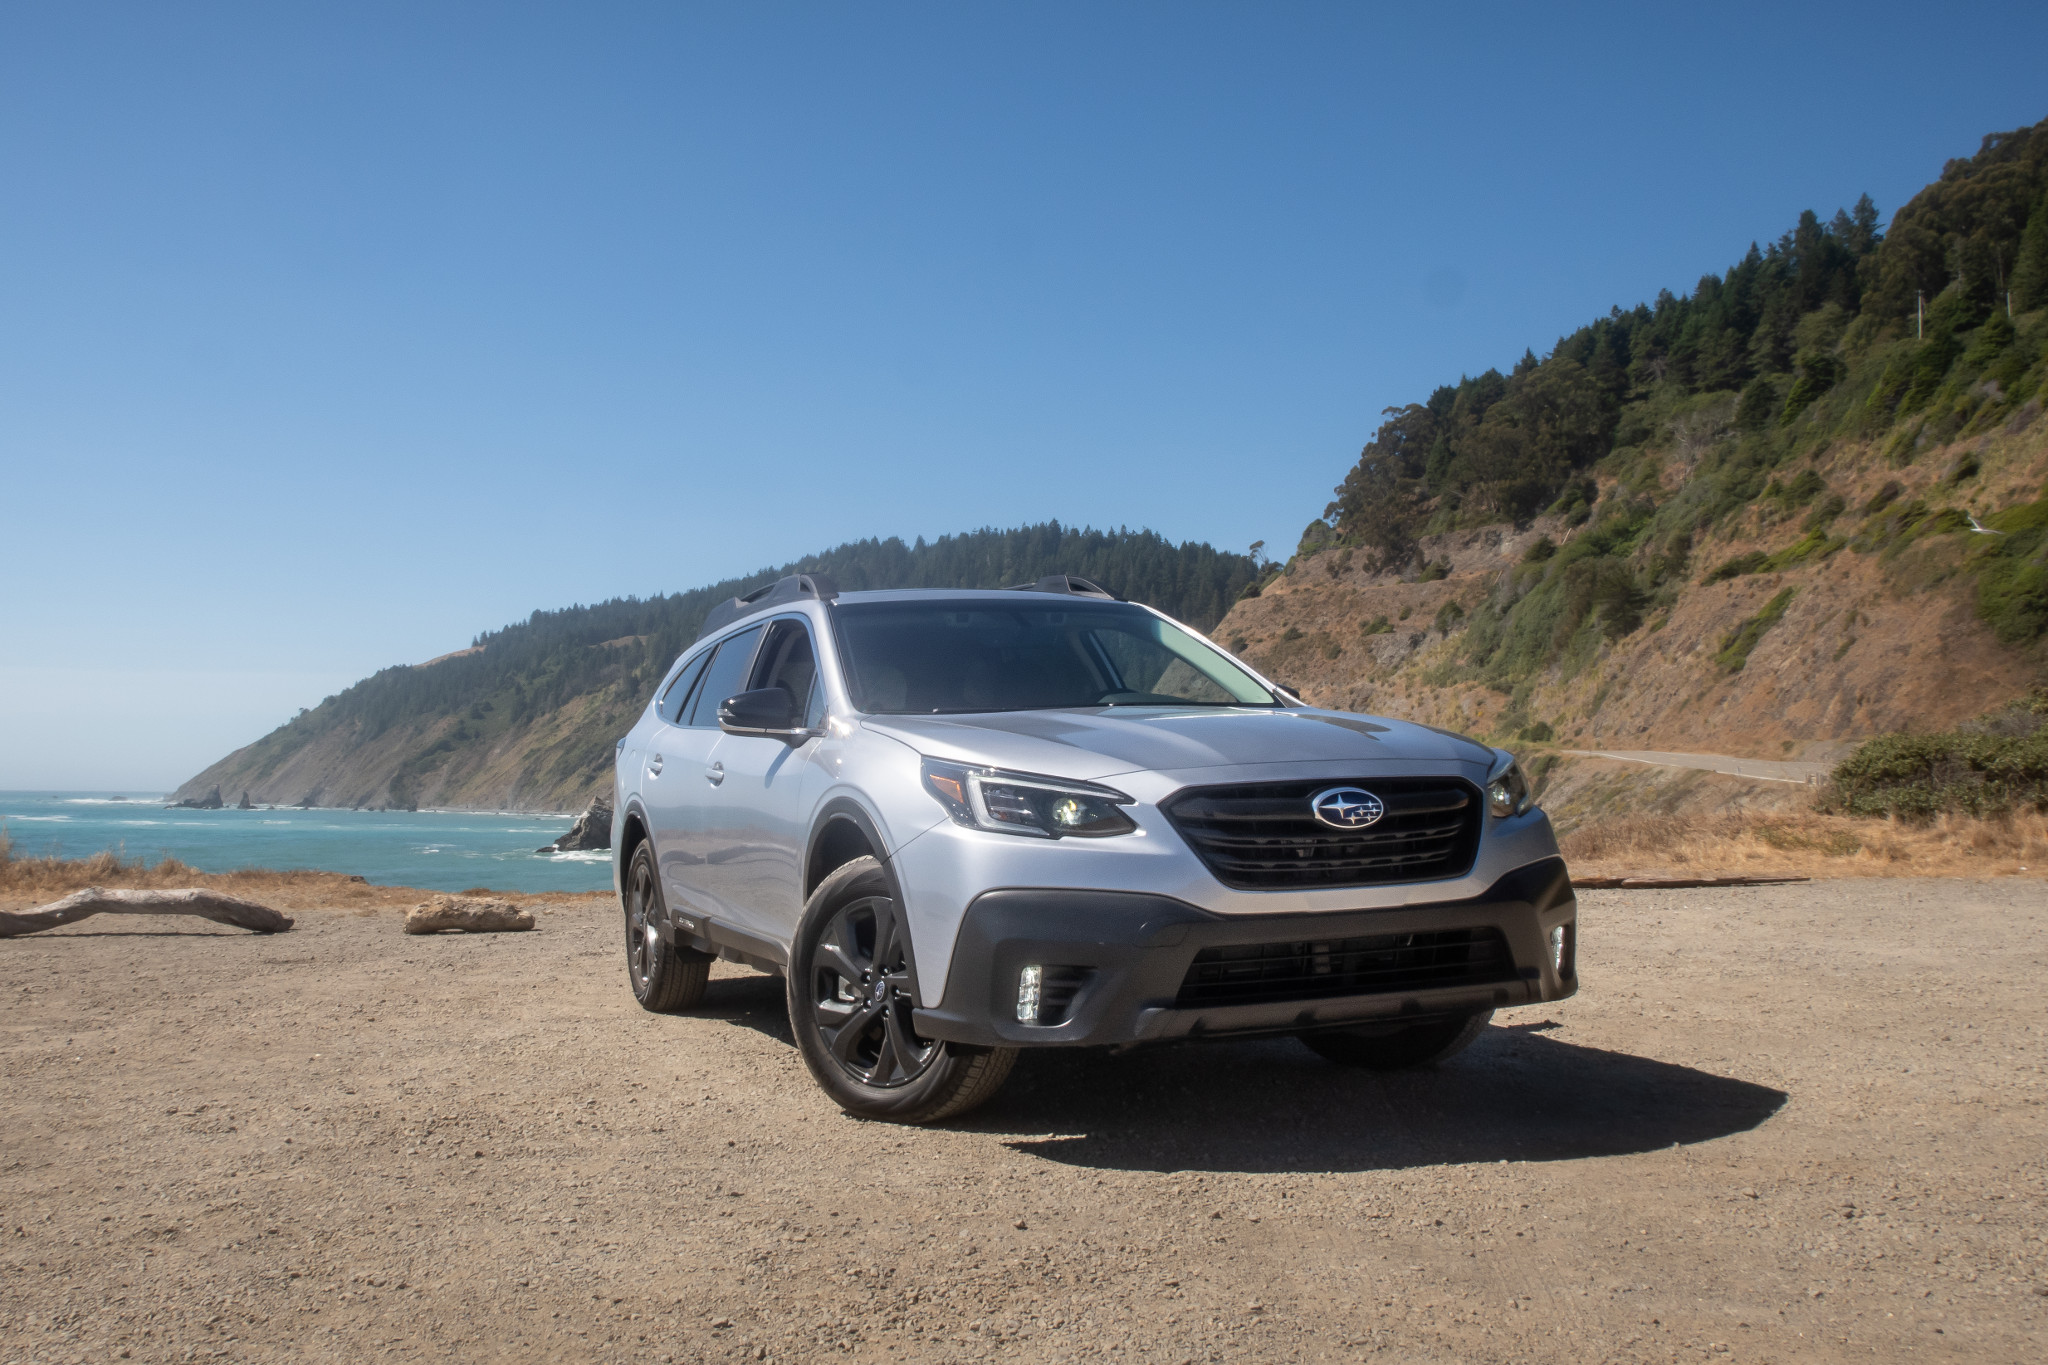 2020 Subaru Forester Xt Review.2020 Subaru Outback Review Punching Above Its Weight Class